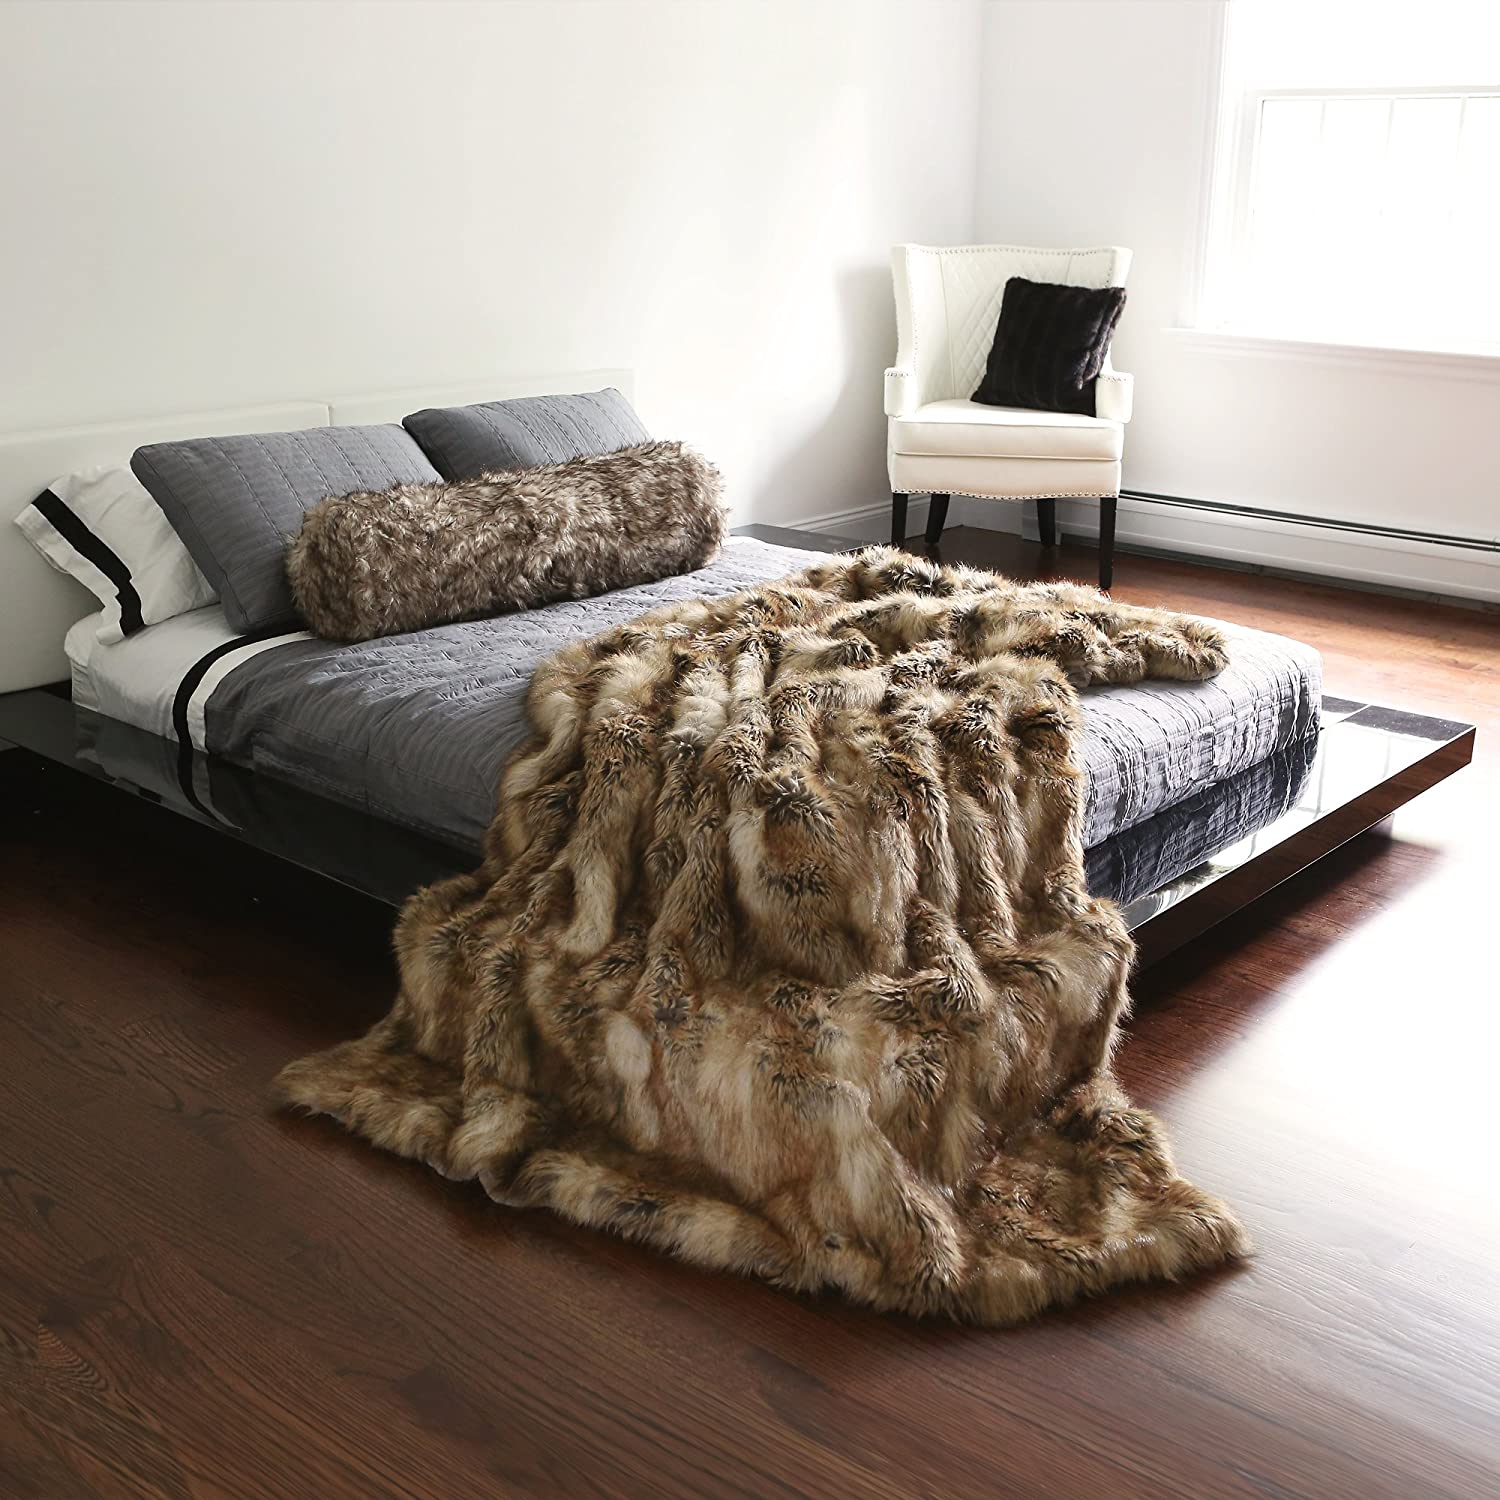 Best Home Fashion Faux Fur Throw - Full Blanket - Amber Fox